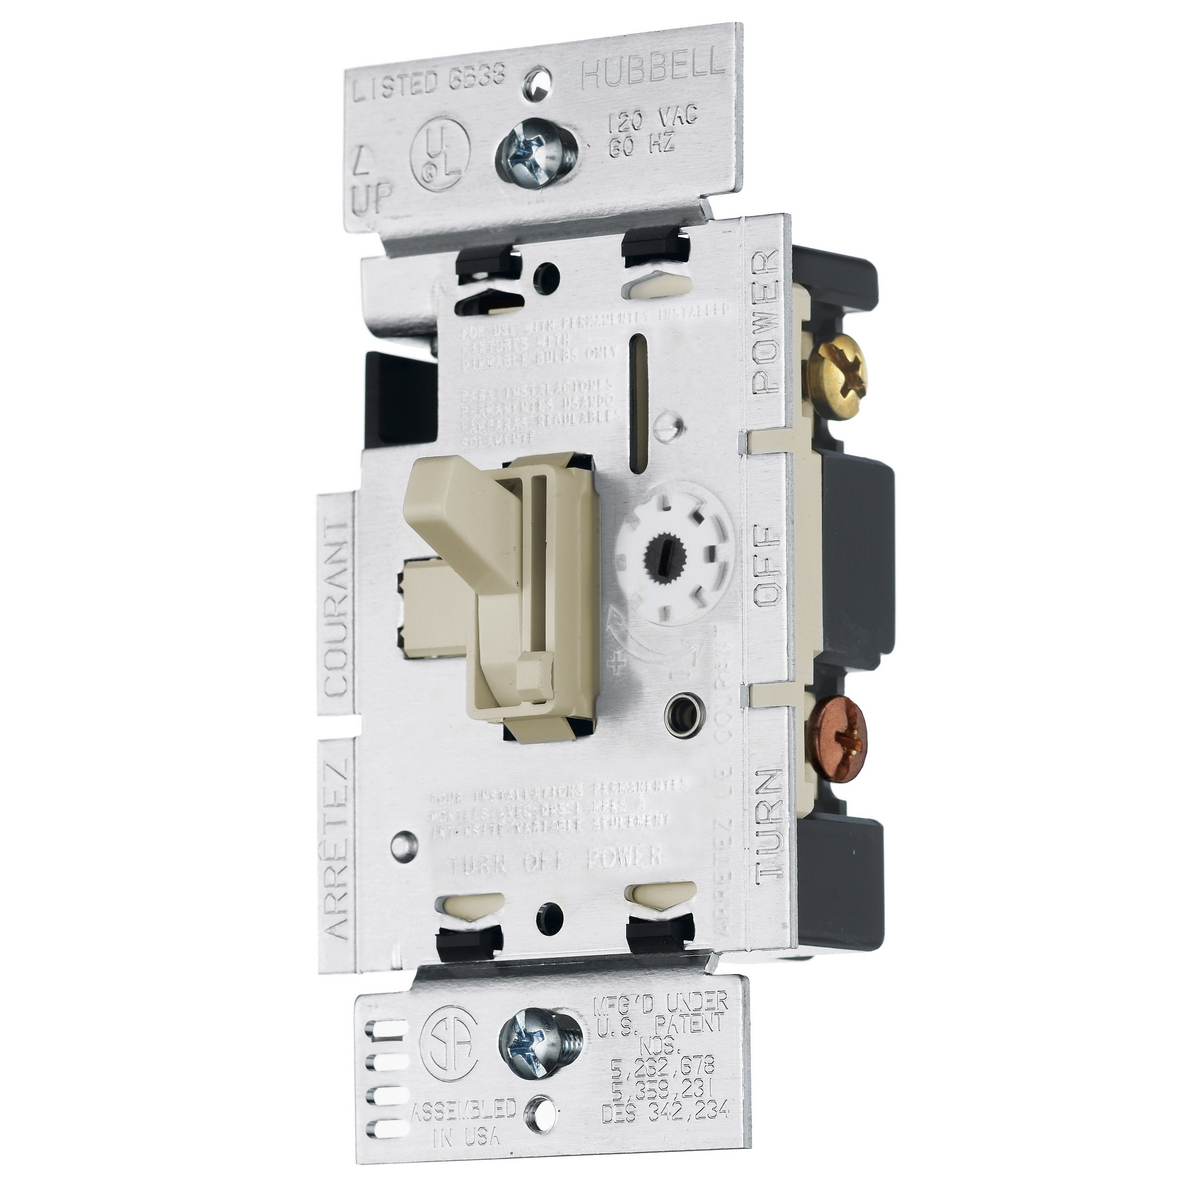 HUBRAYCL153PI SP/3-WAY DIMMER CFL AND LED, IVORY ,RAYCL153PI, HUBBELL